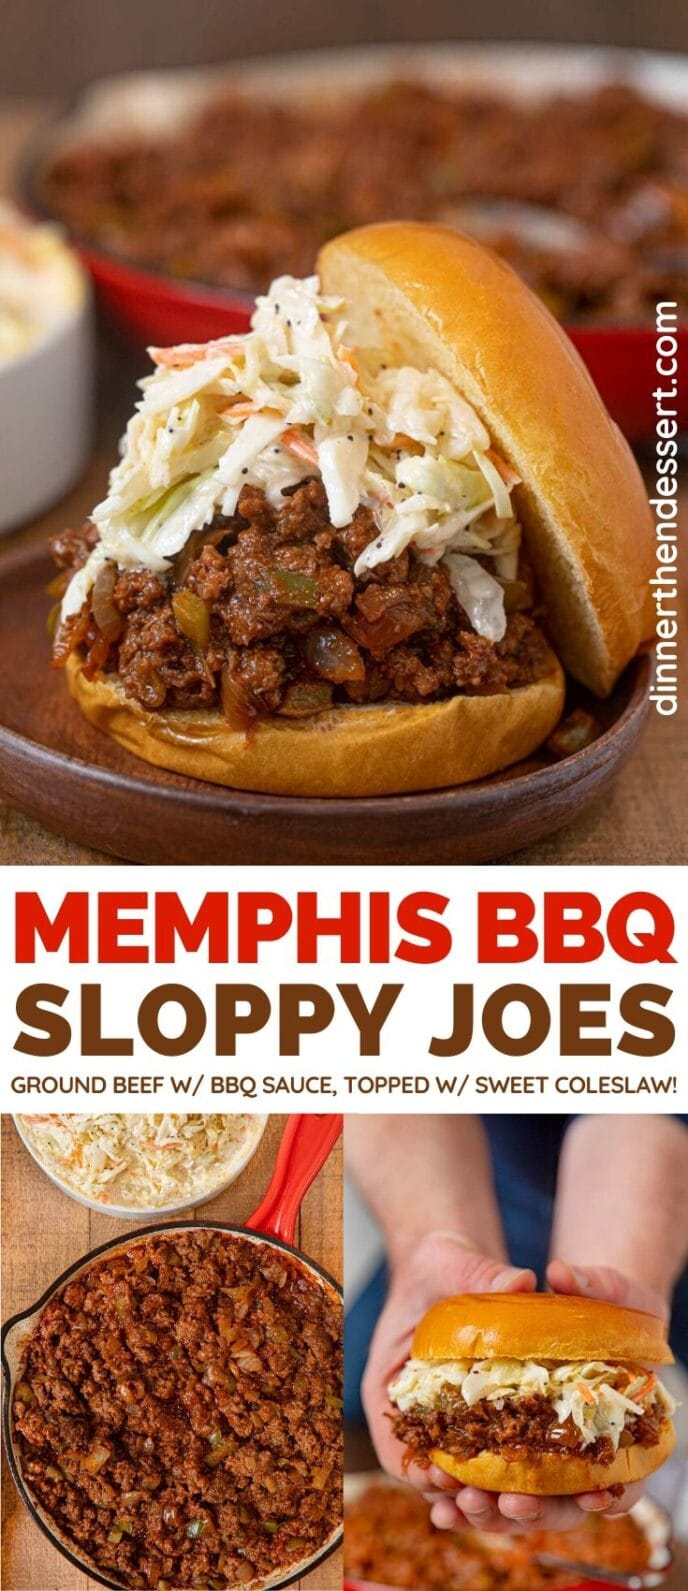 Memphis BBQ Sloppy Joes collage